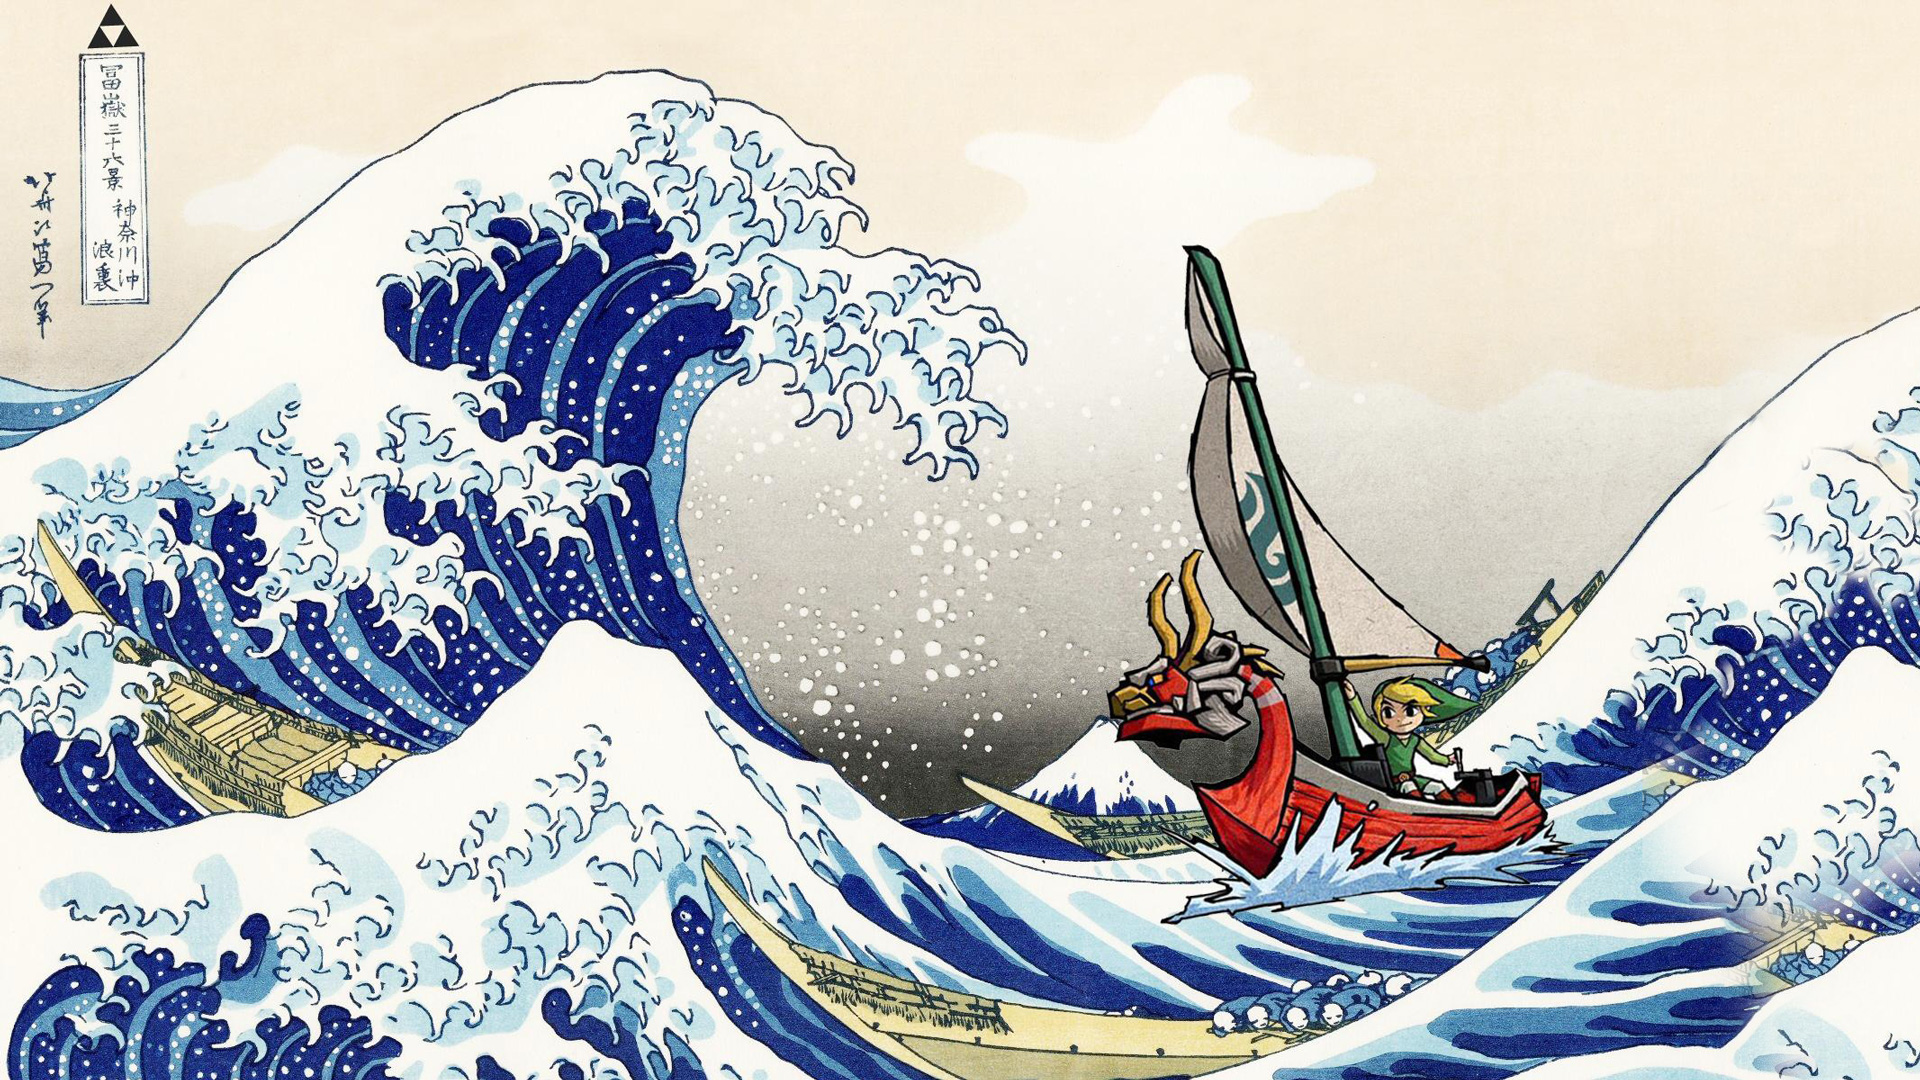 wind waker wallpaper wallpapersafari